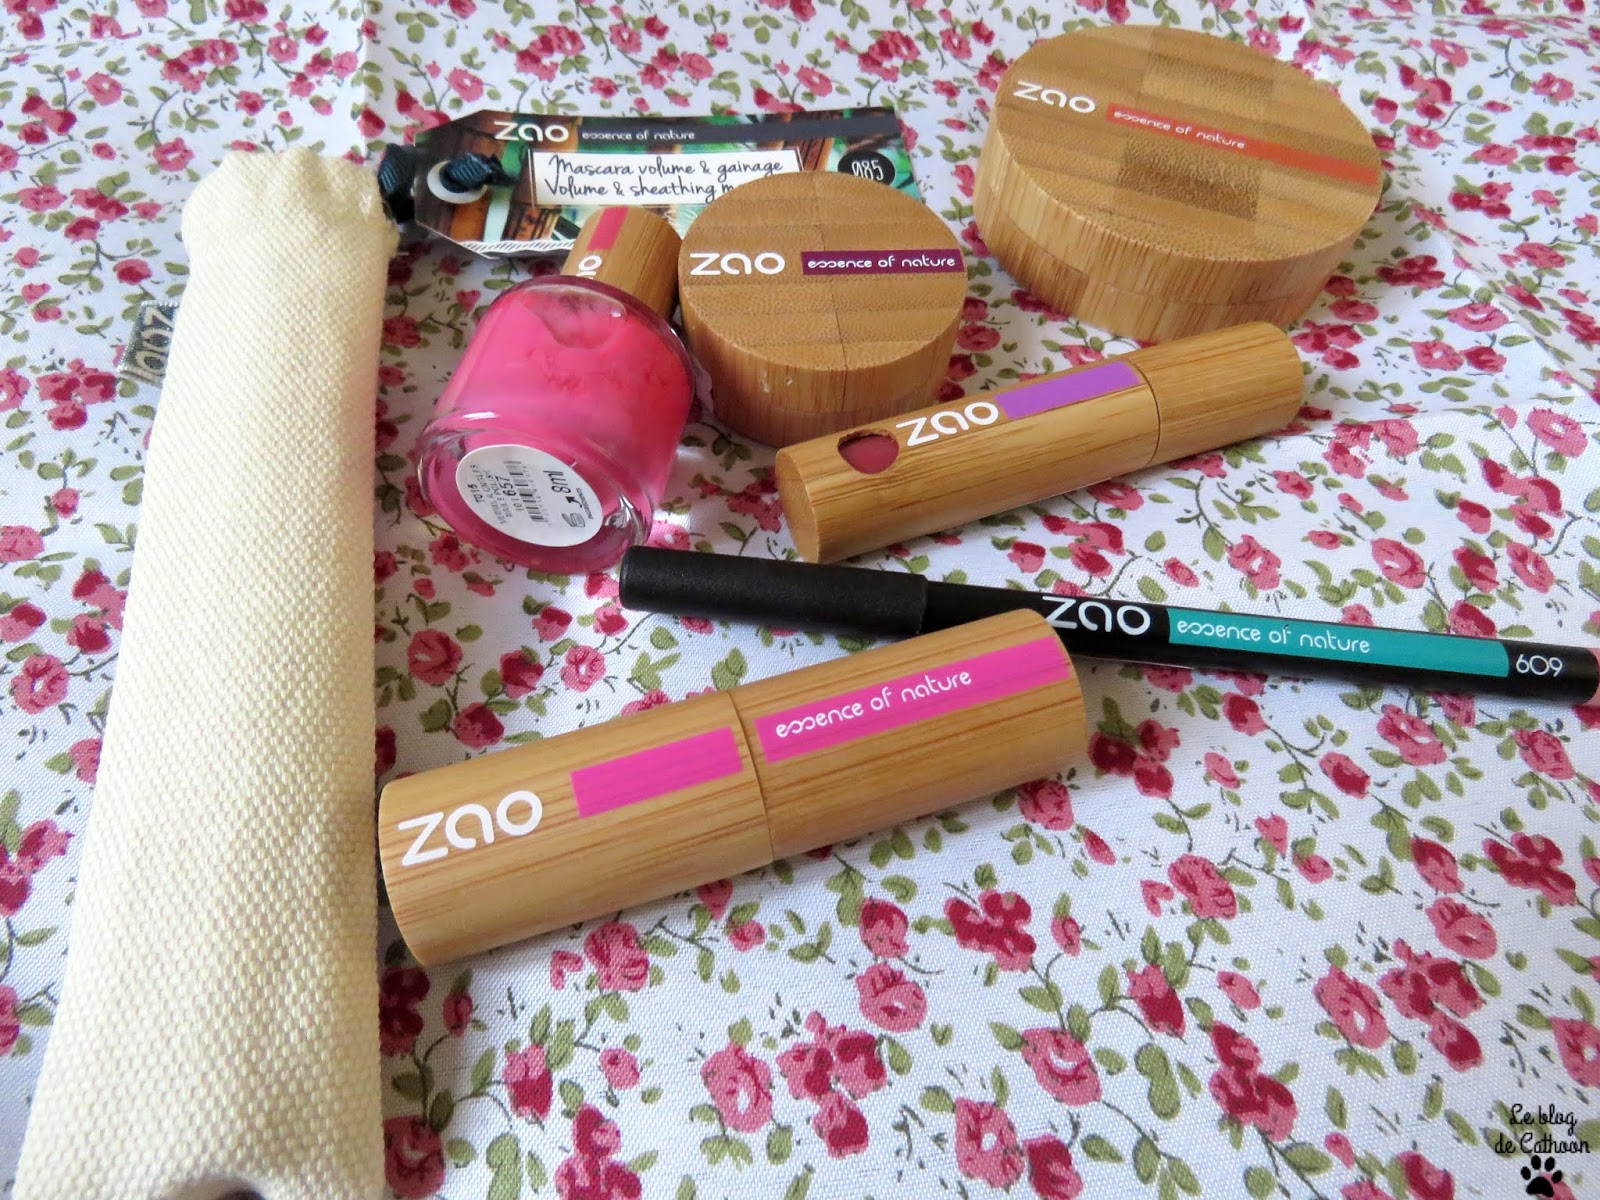 Zao, maquillage 100% naturel, bio et vegan